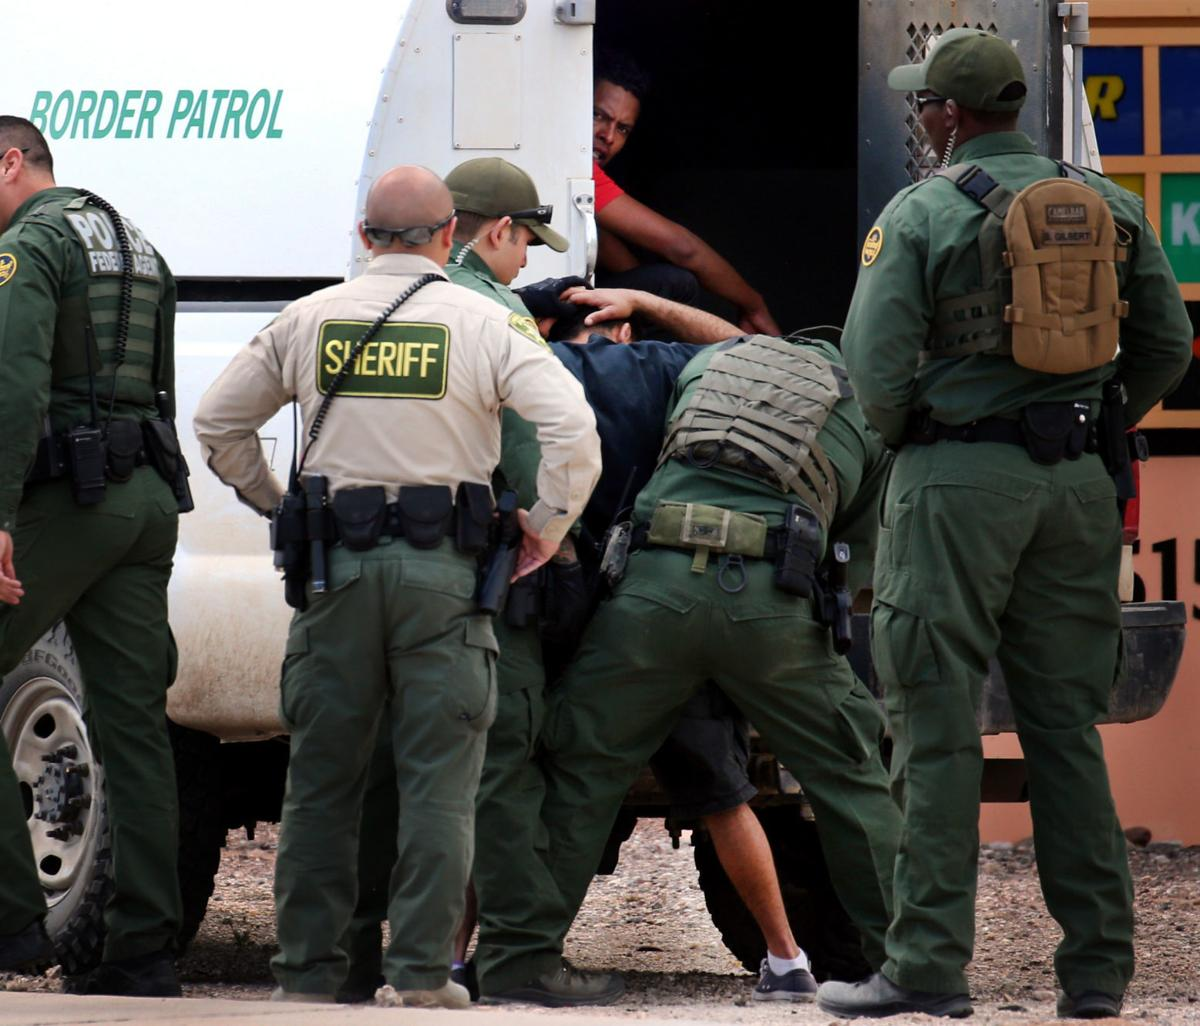 Border Patrol apprehensions in Tucson